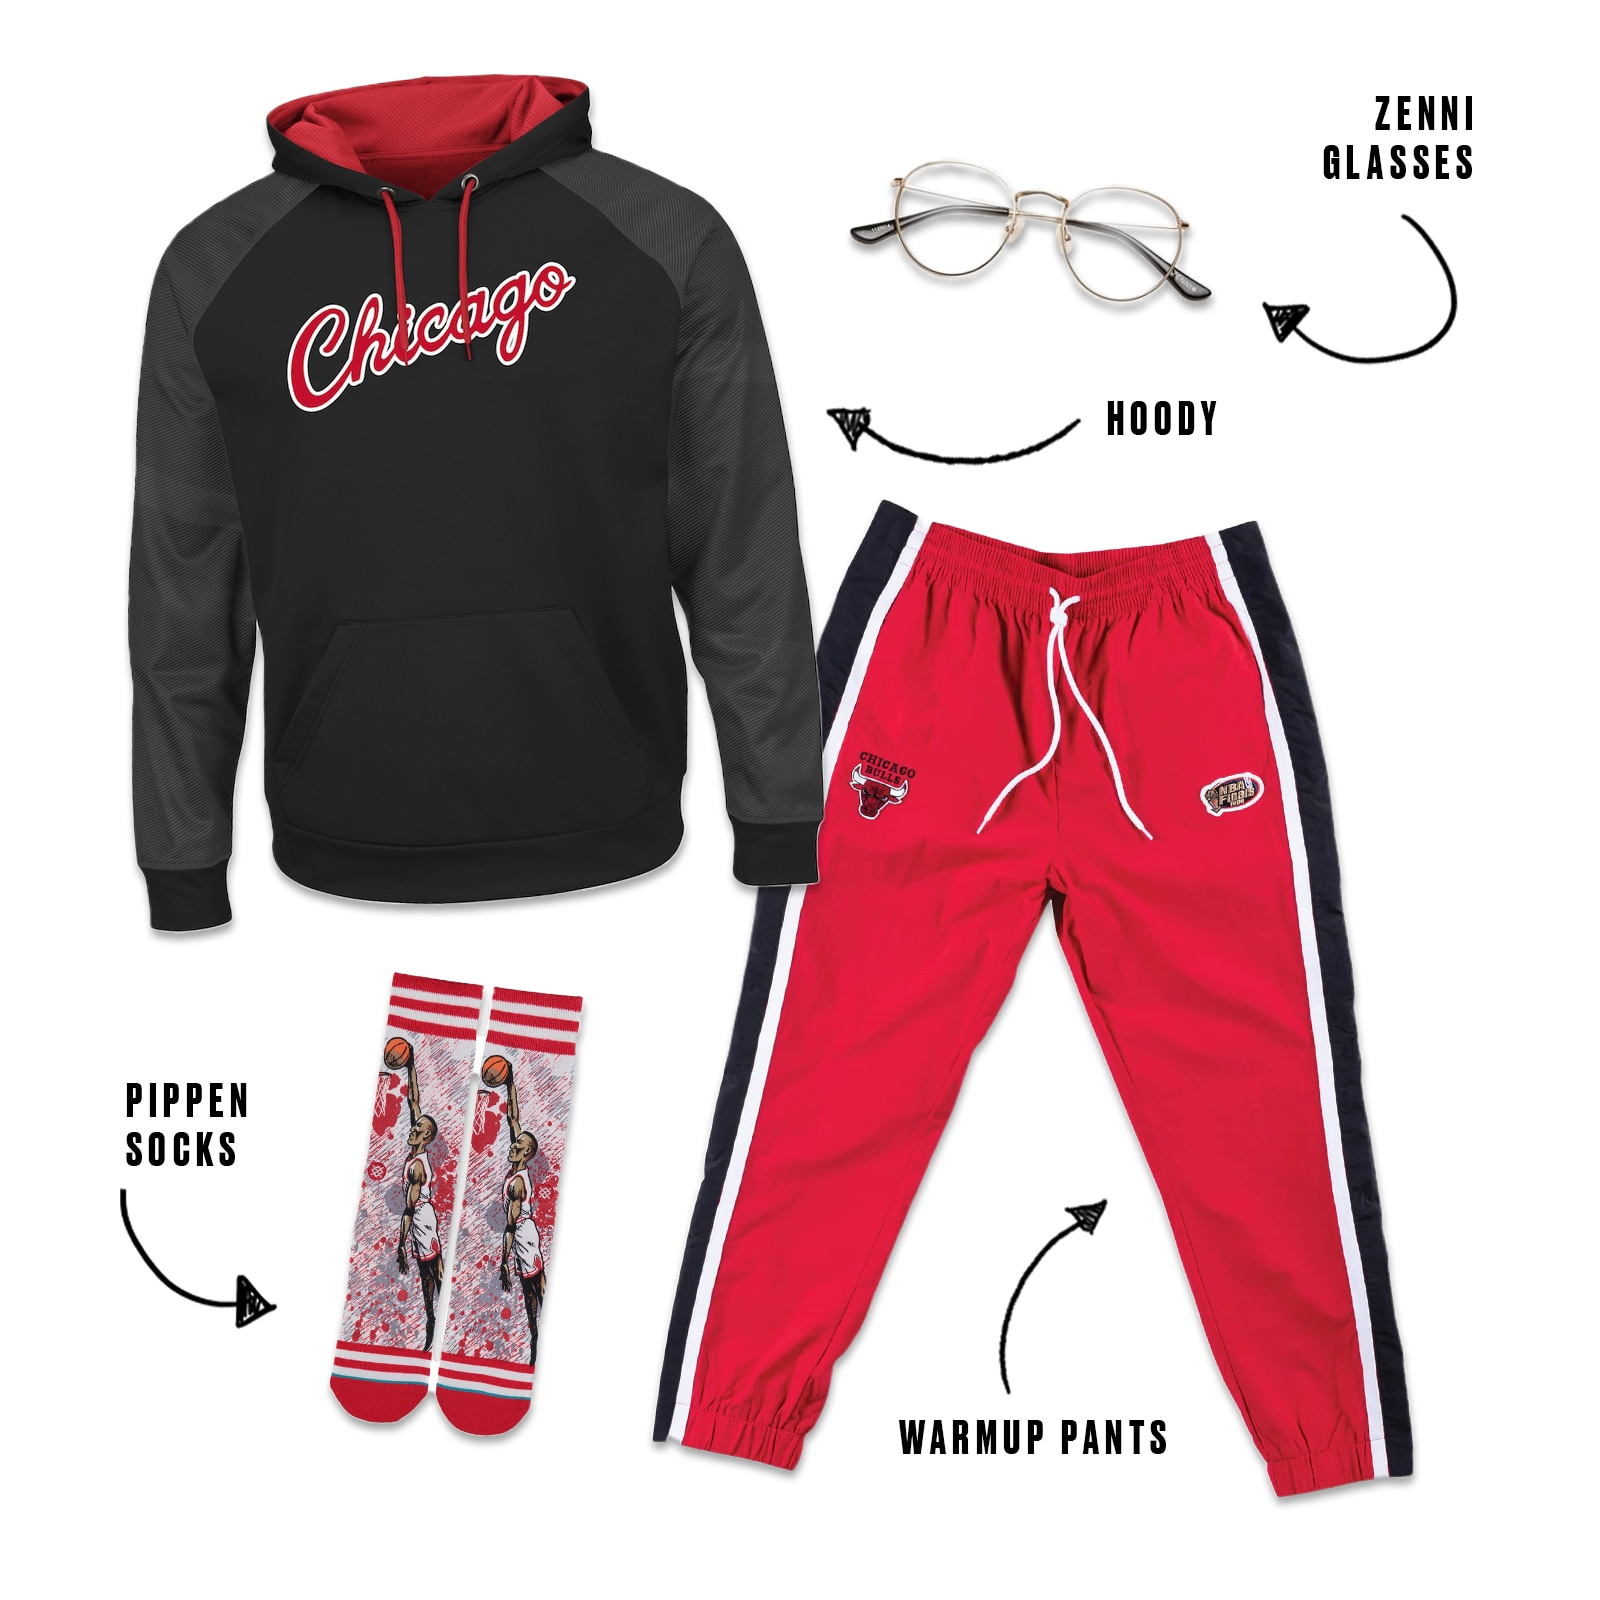 Bulls hoody and sweat pants with Zenni glasses